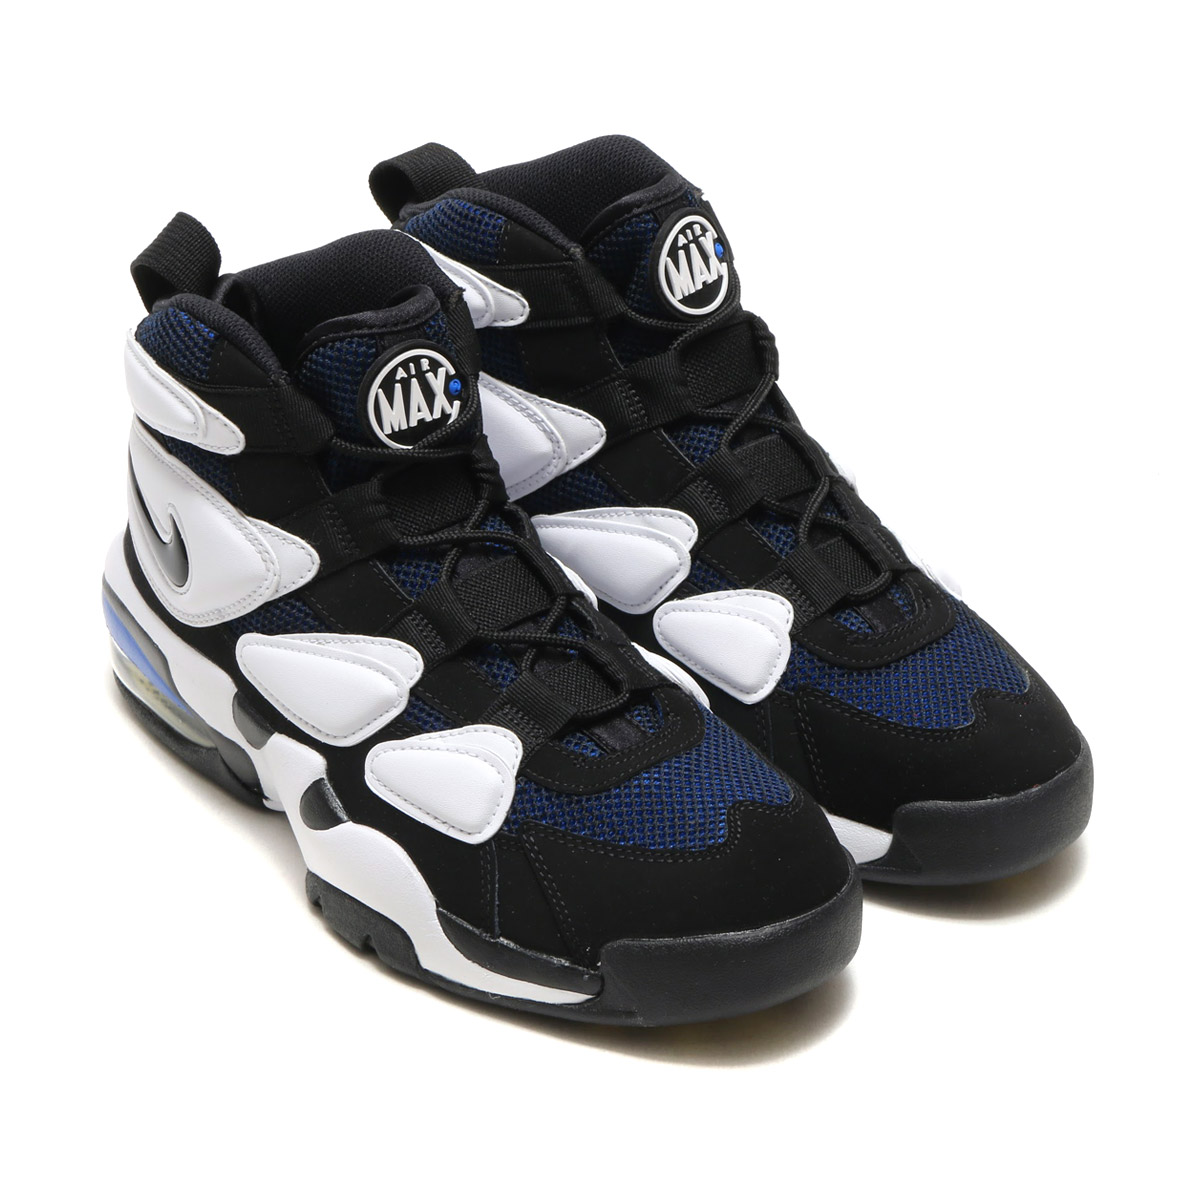 a668761883 Herrenschuhe Nike Air Max Uptempo 94 Allstar 2017 Men Sizes